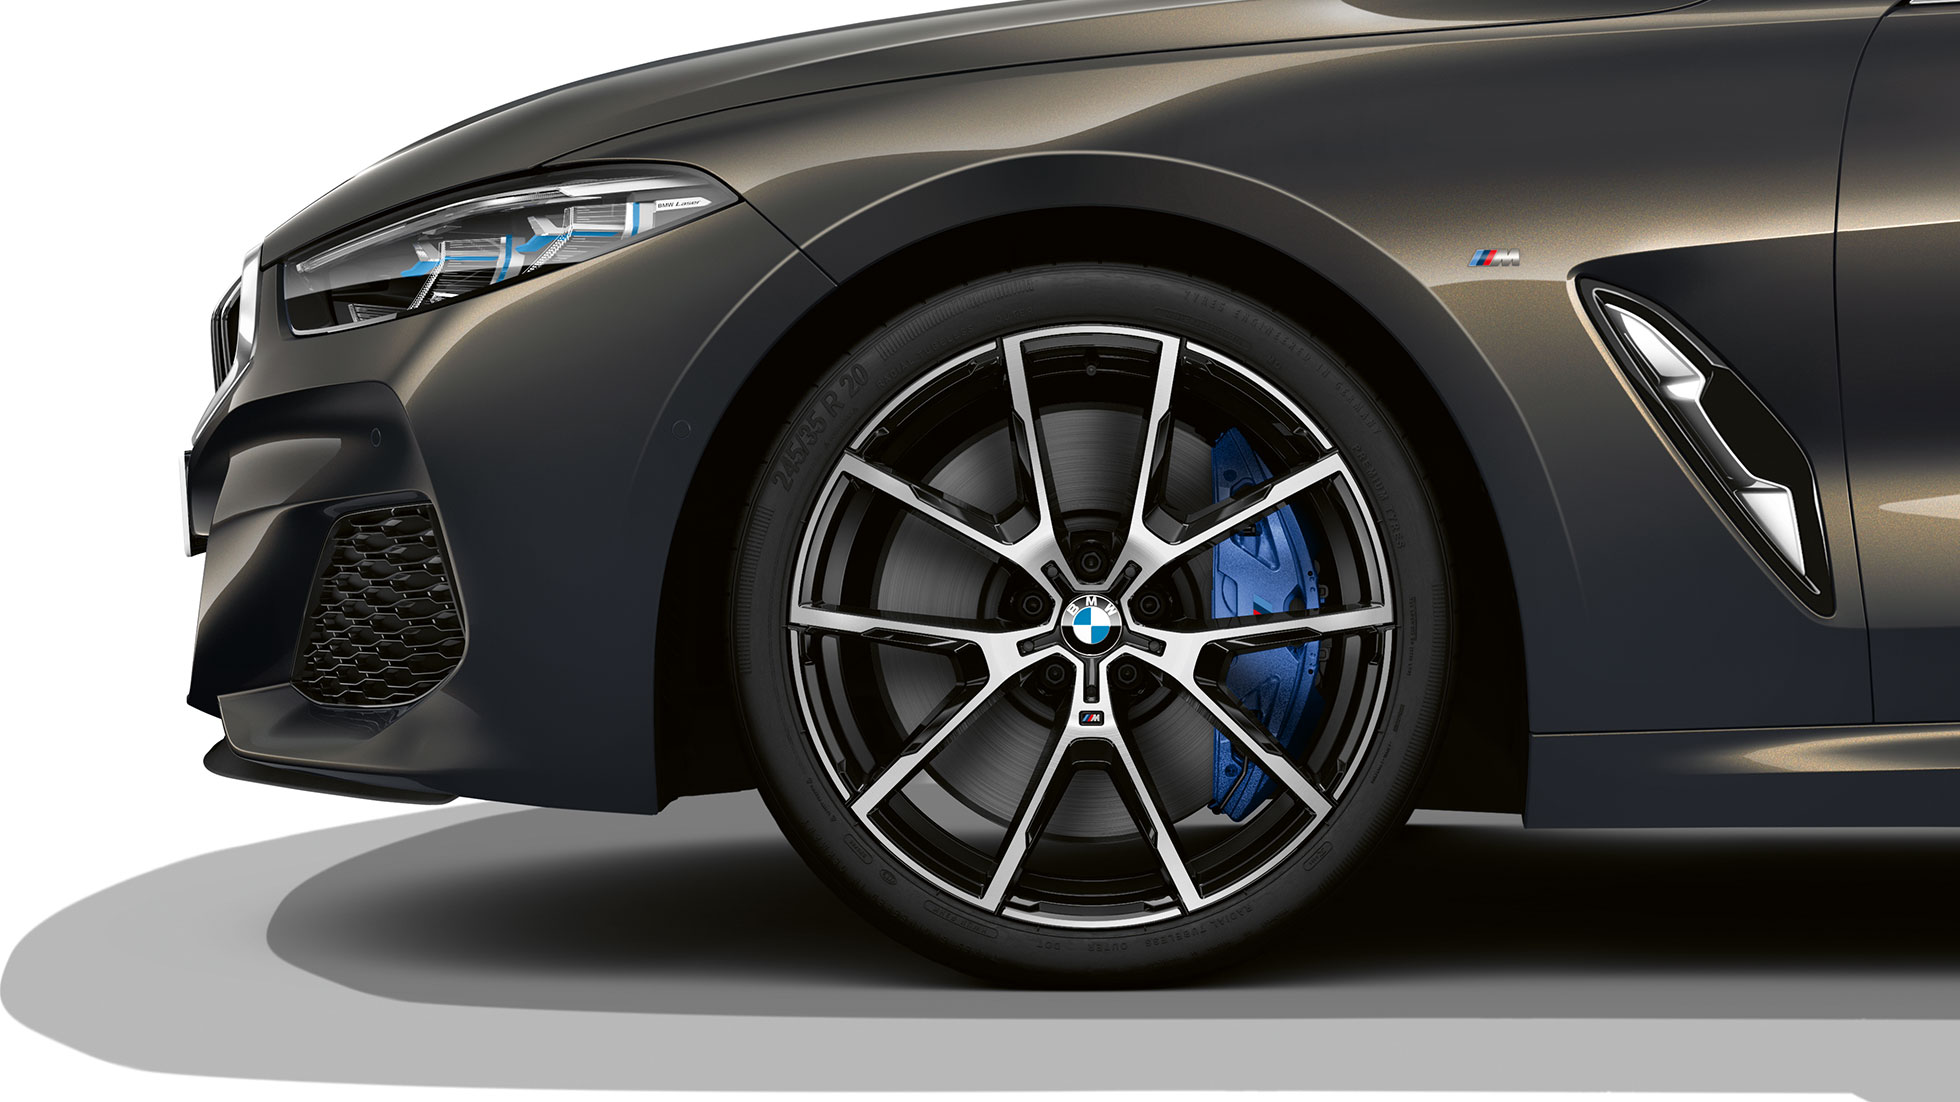 "BMW M850i xDrive, Dravit Grey metallic, 20"" light-alloy wheels Y-spoke 728 M."